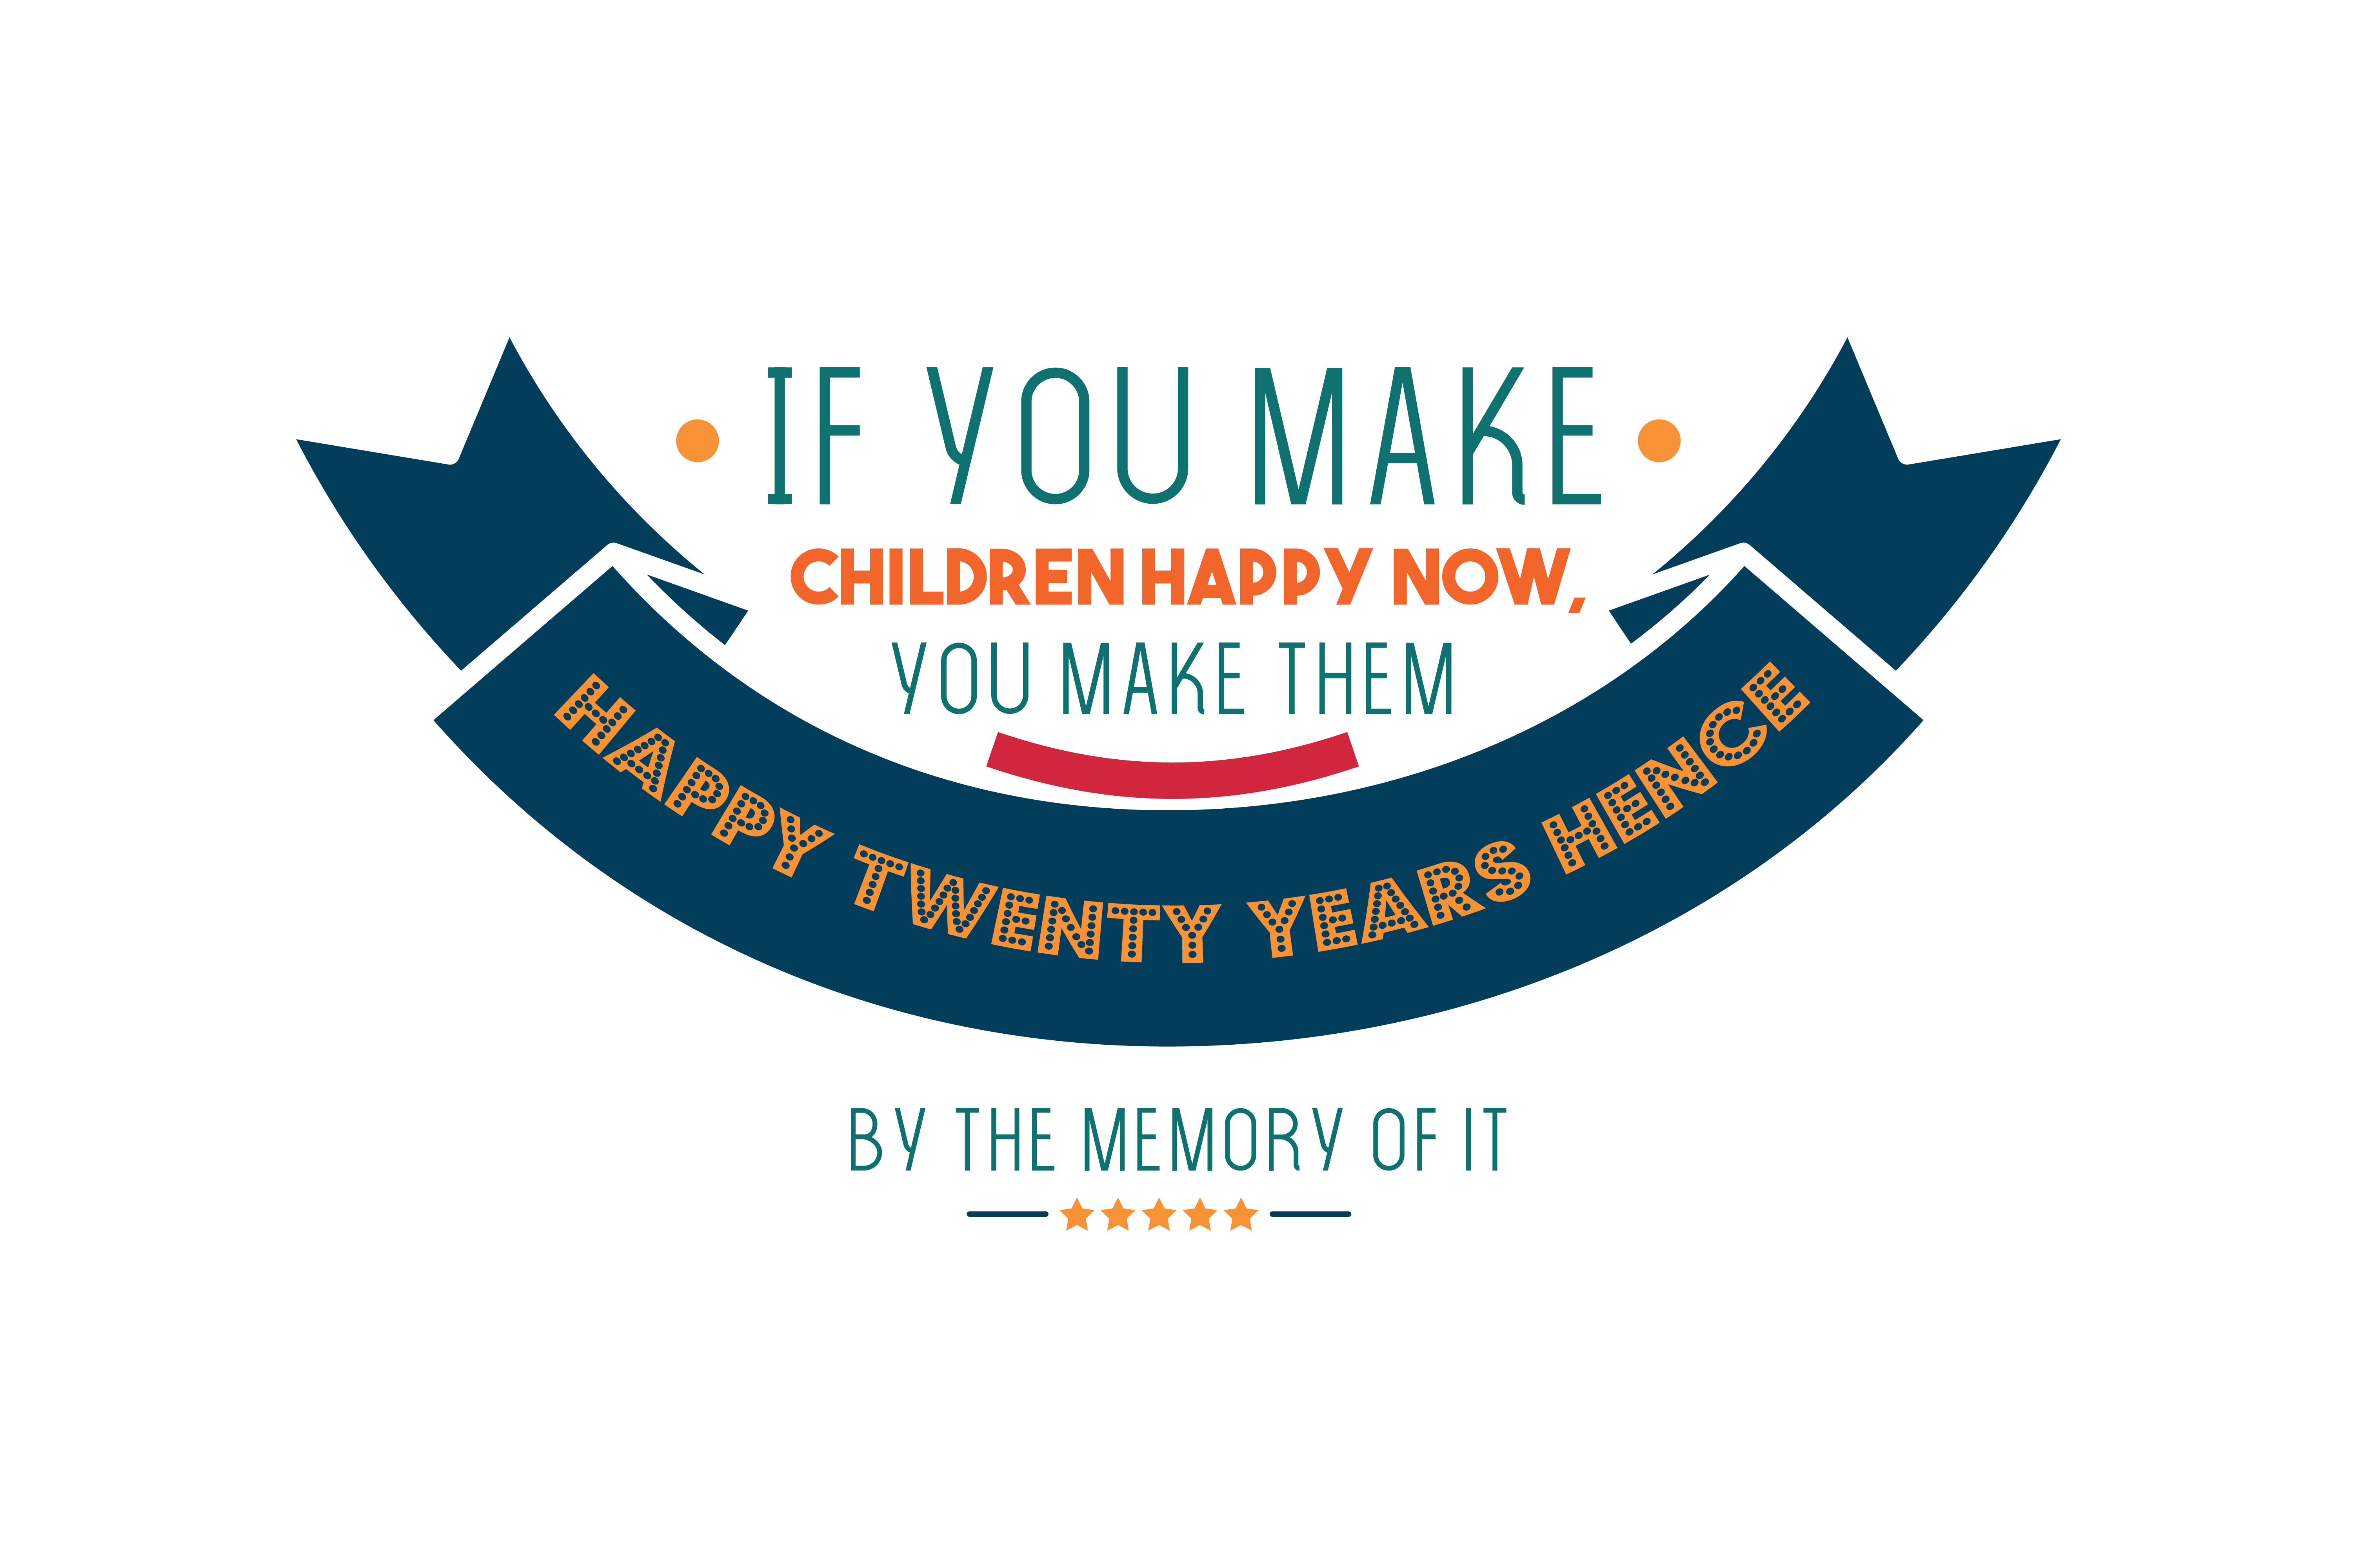 Download Free If You Make Children Happy Now You Make Them Happy Twenty Years for Cricut Explore, Silhouette and other cutting machines.